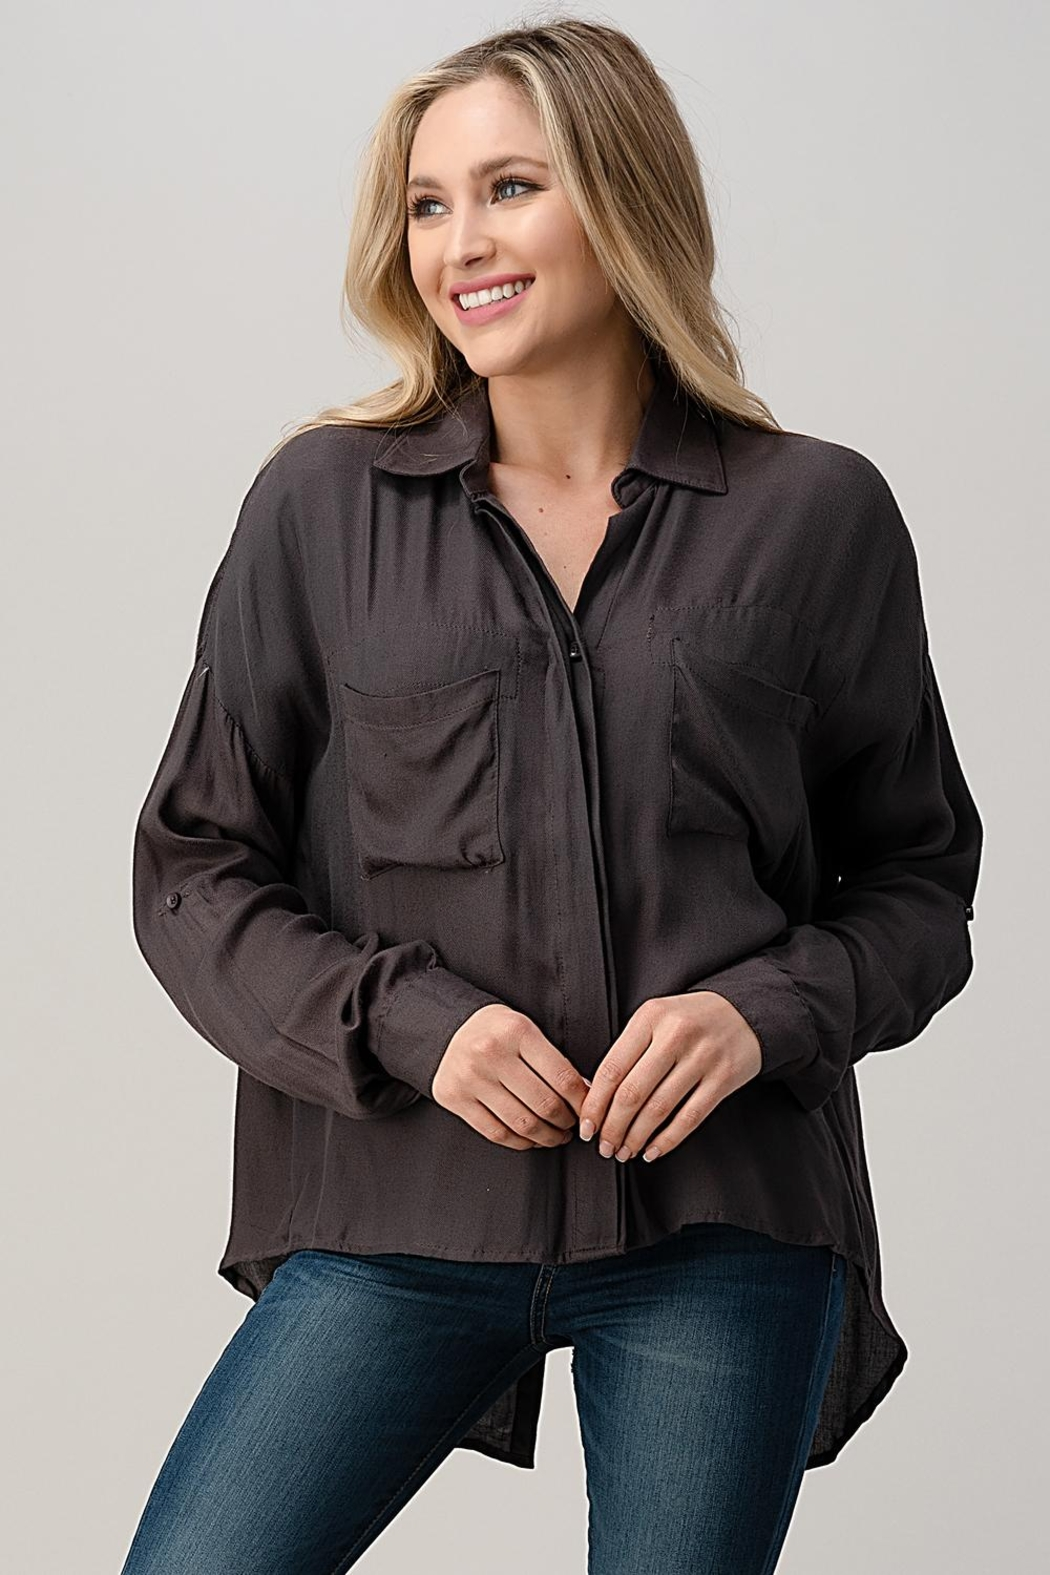 Kaii High-Low Hem And Rolled Up Sleeves Shirts Top - Main Image